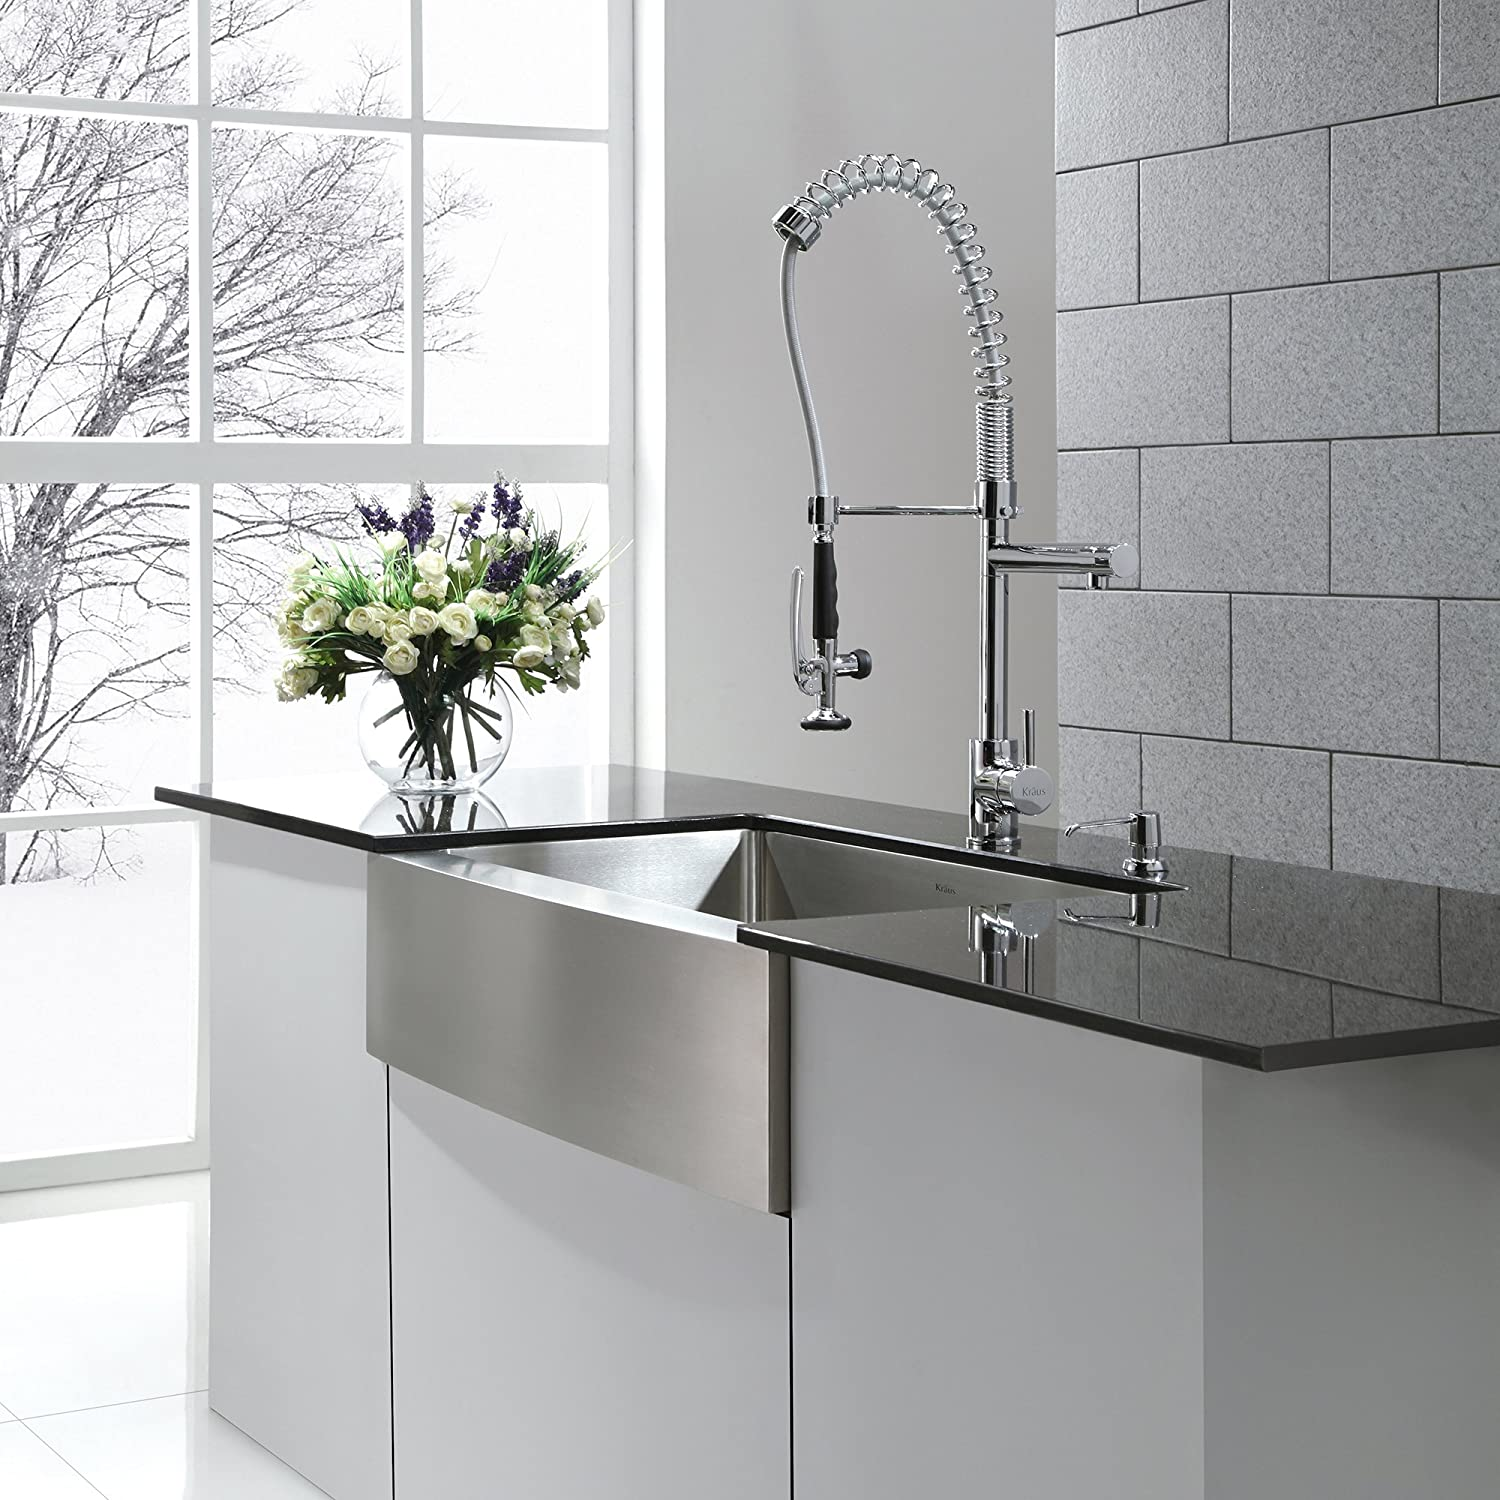 stainless kitchen farmhouse sinks atwood optimum sink steel